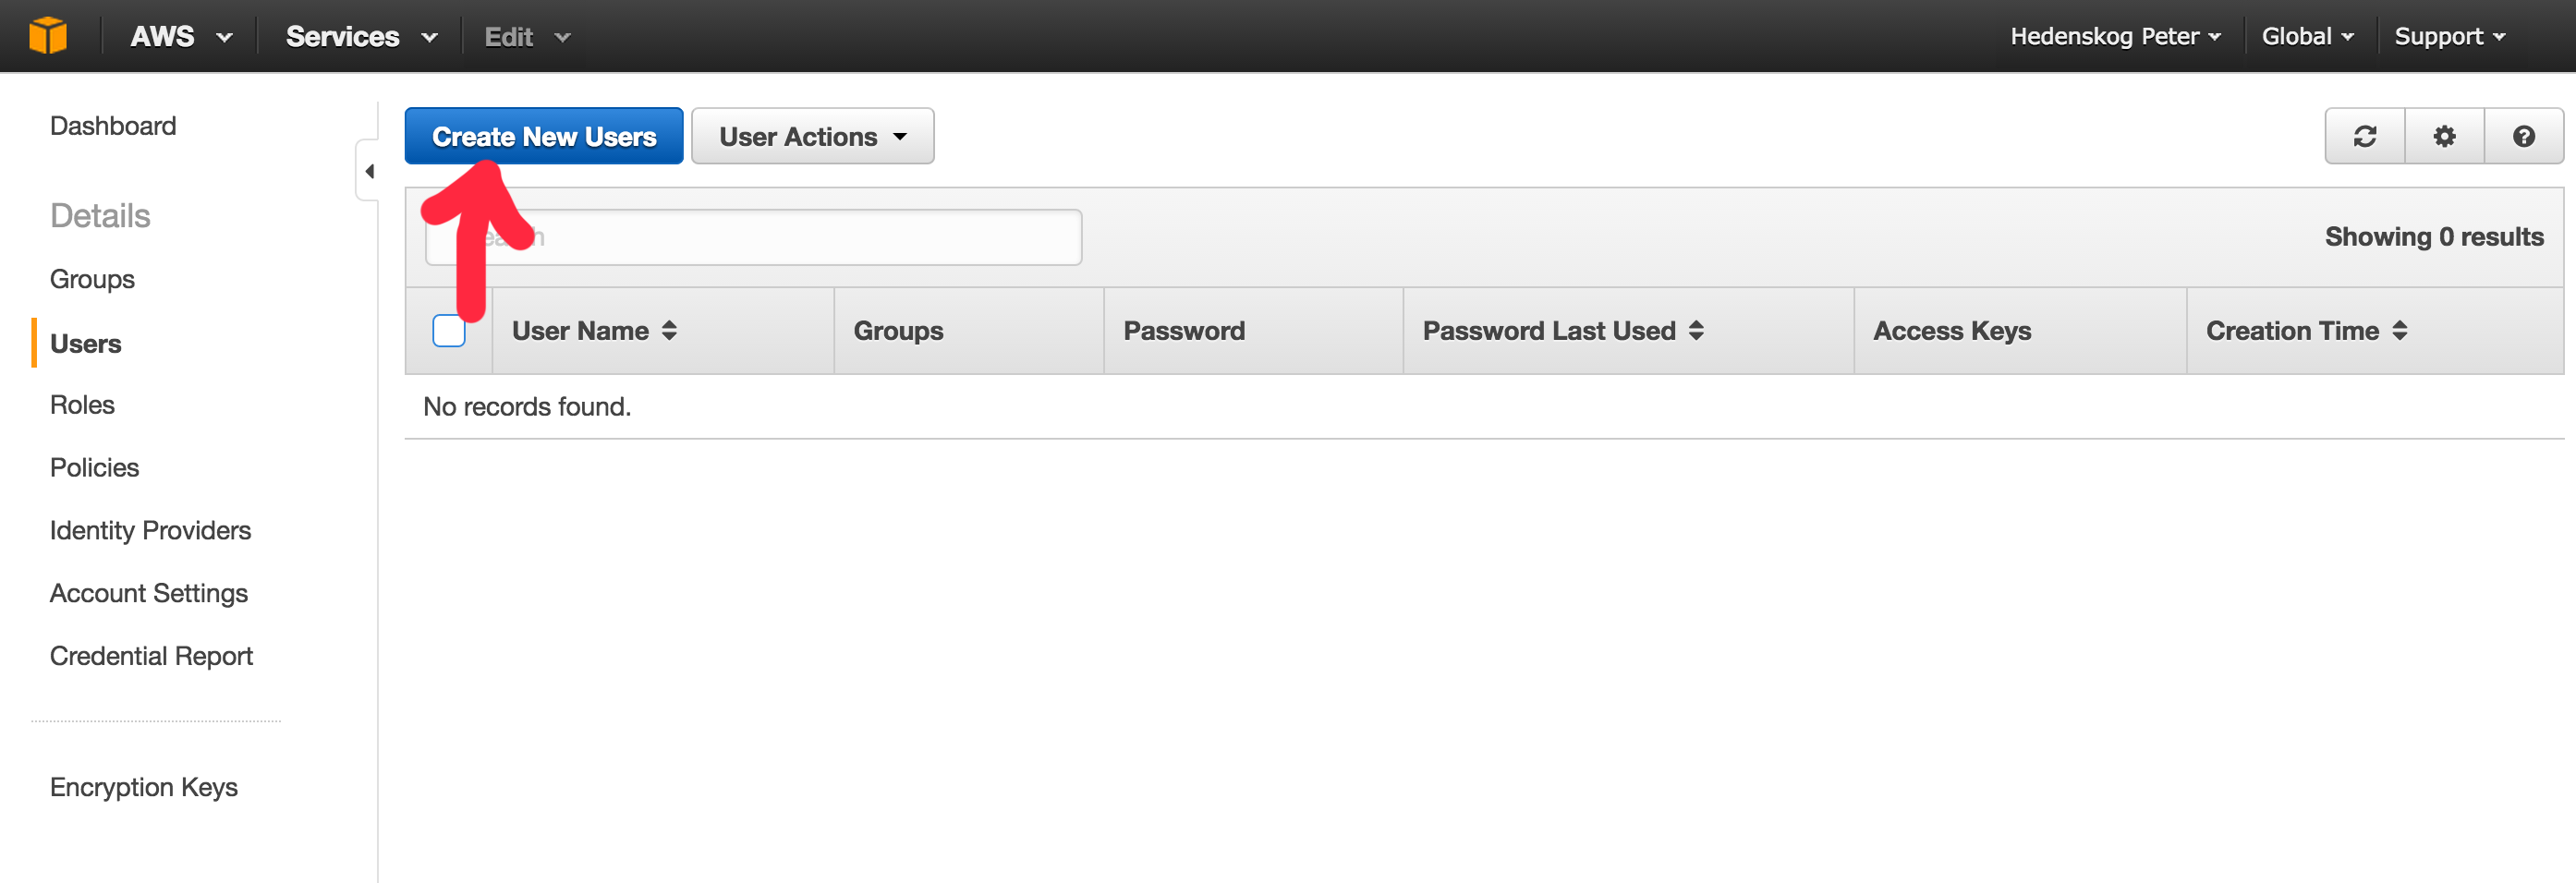 Private WebPageTest instances on AWS